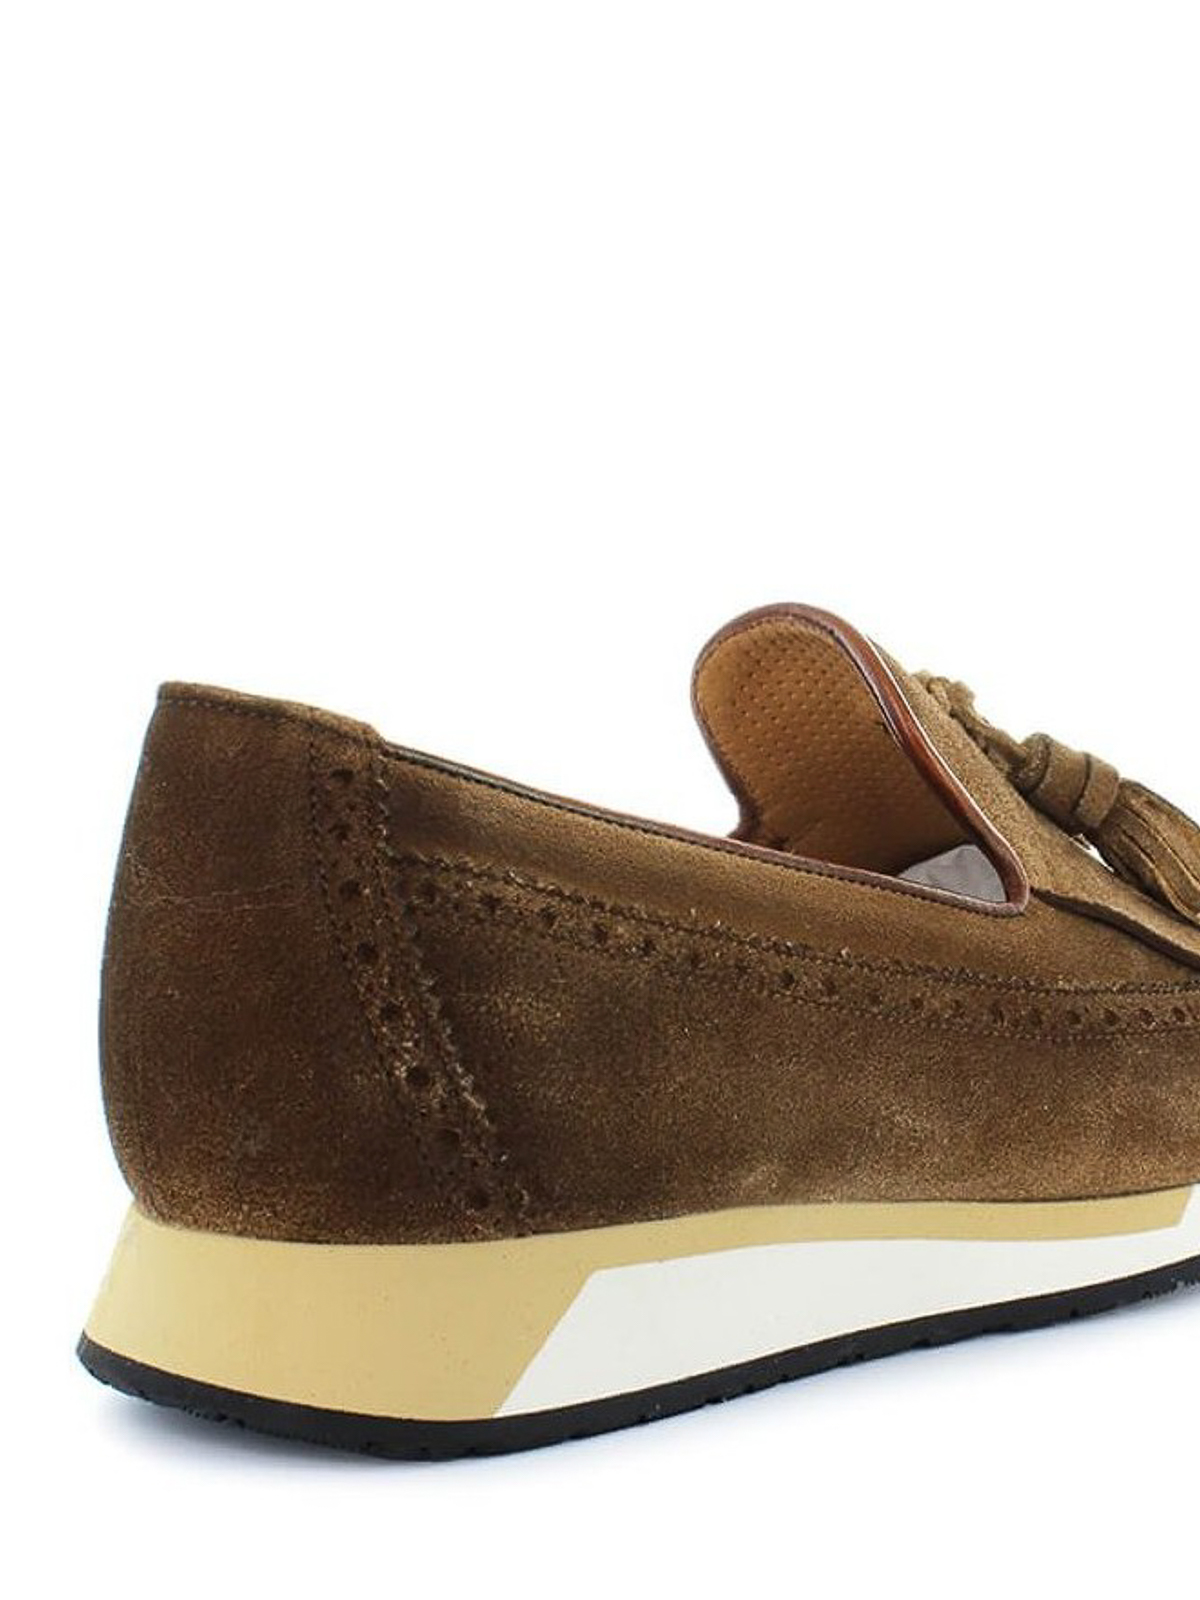 b714643d45a Santoni - Running sole suede loafers - Loafers & Slippers ...